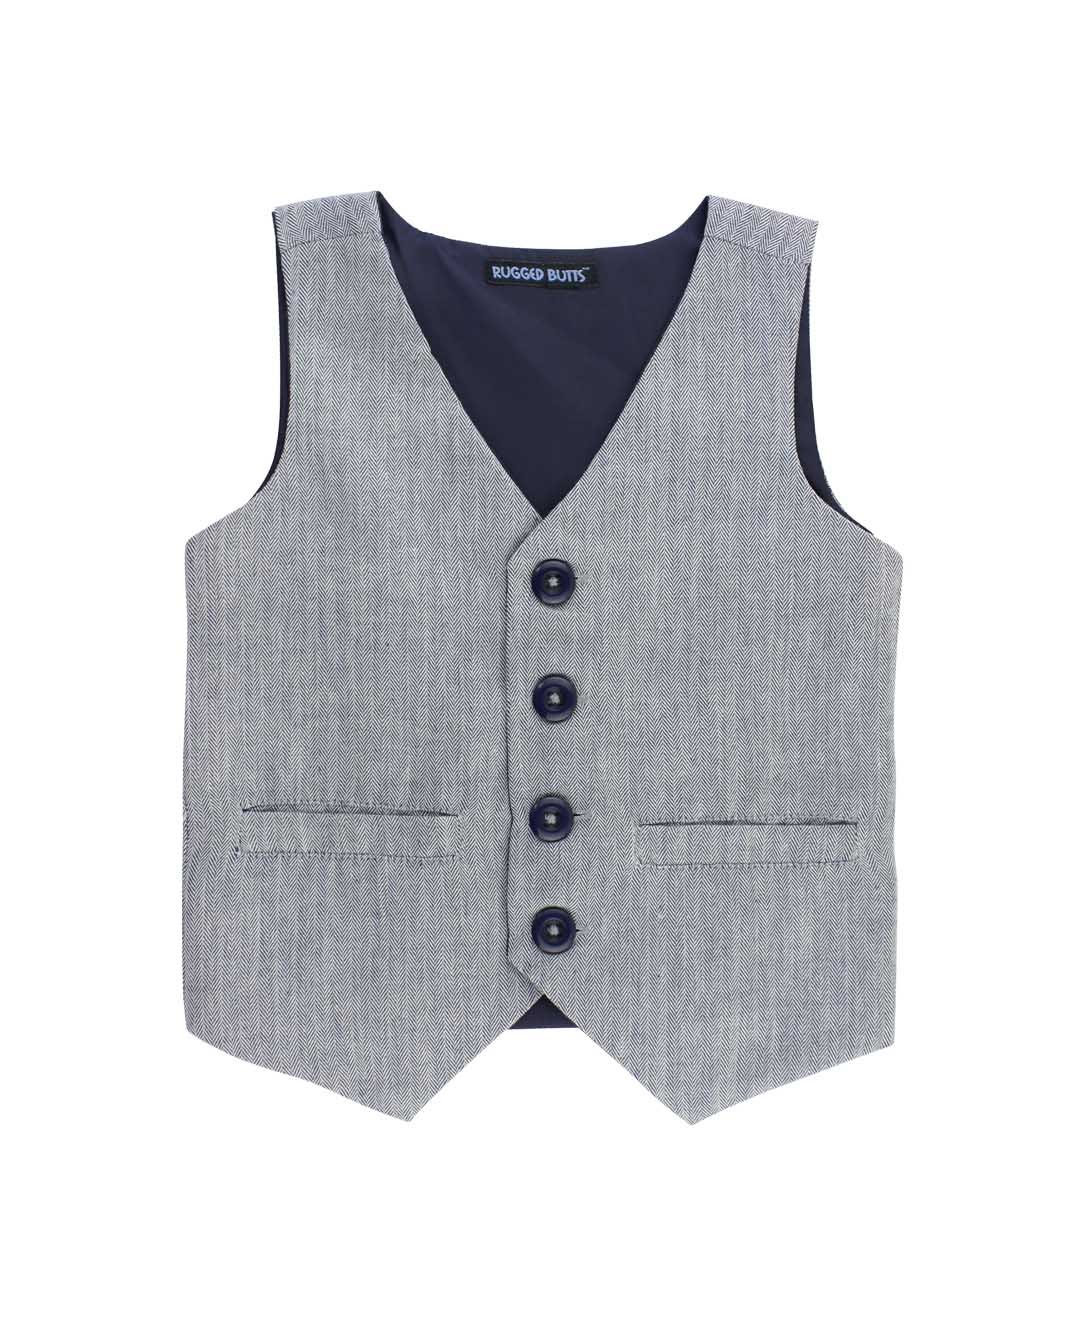 RuggedButts Little Boys Gray Herringbone Formal Vest w/Navy Buttons BVWGYXX-GYHB-TDLR